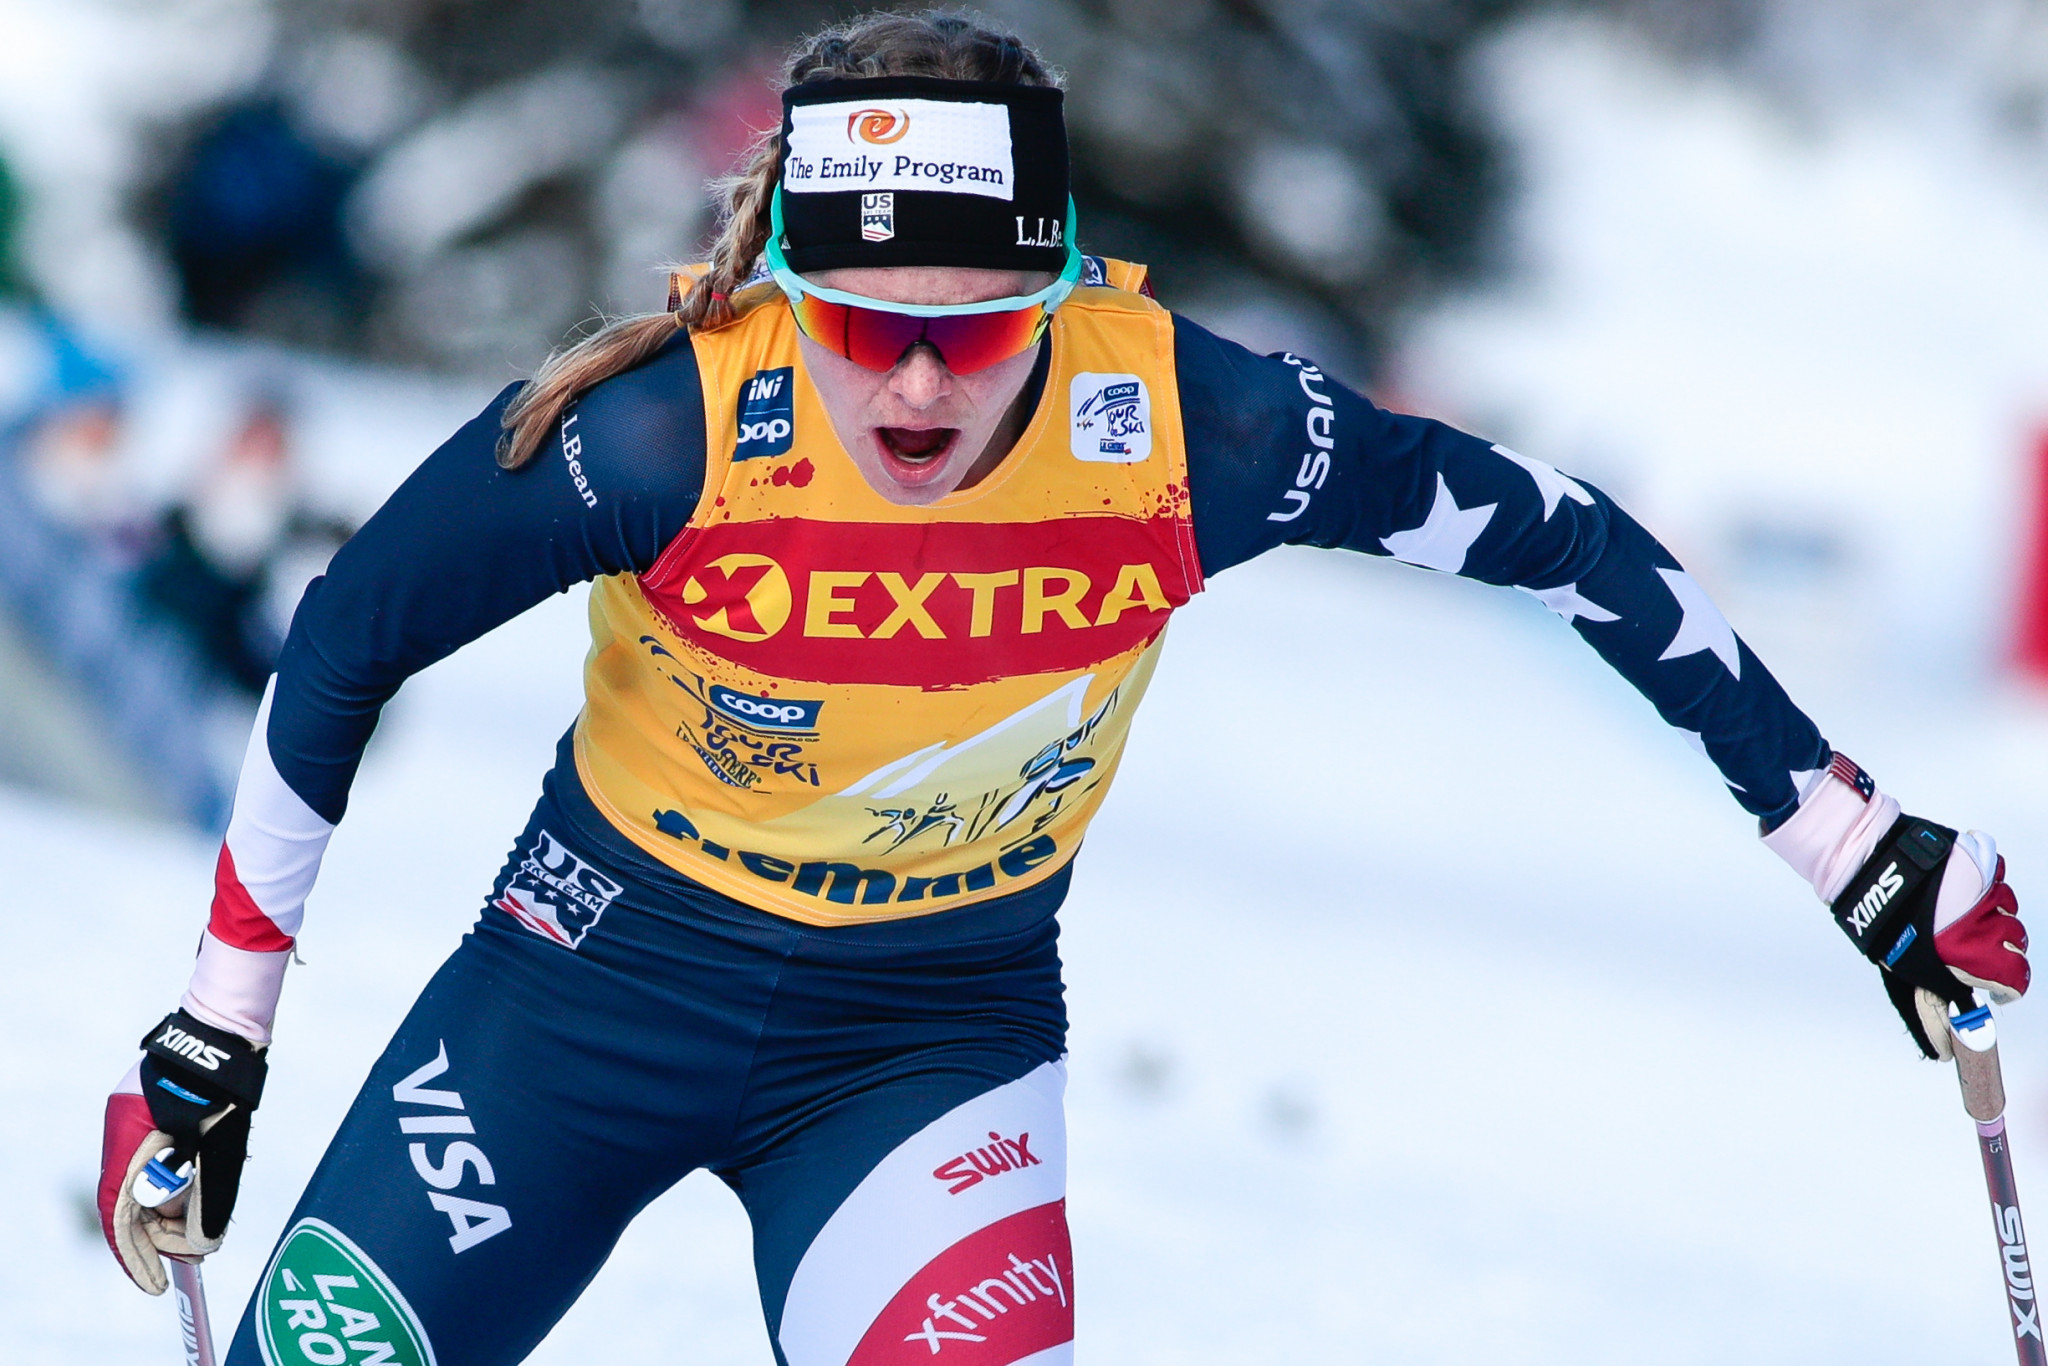 Diggins aiming for first individual title at FIS Nordic World Ski Championships